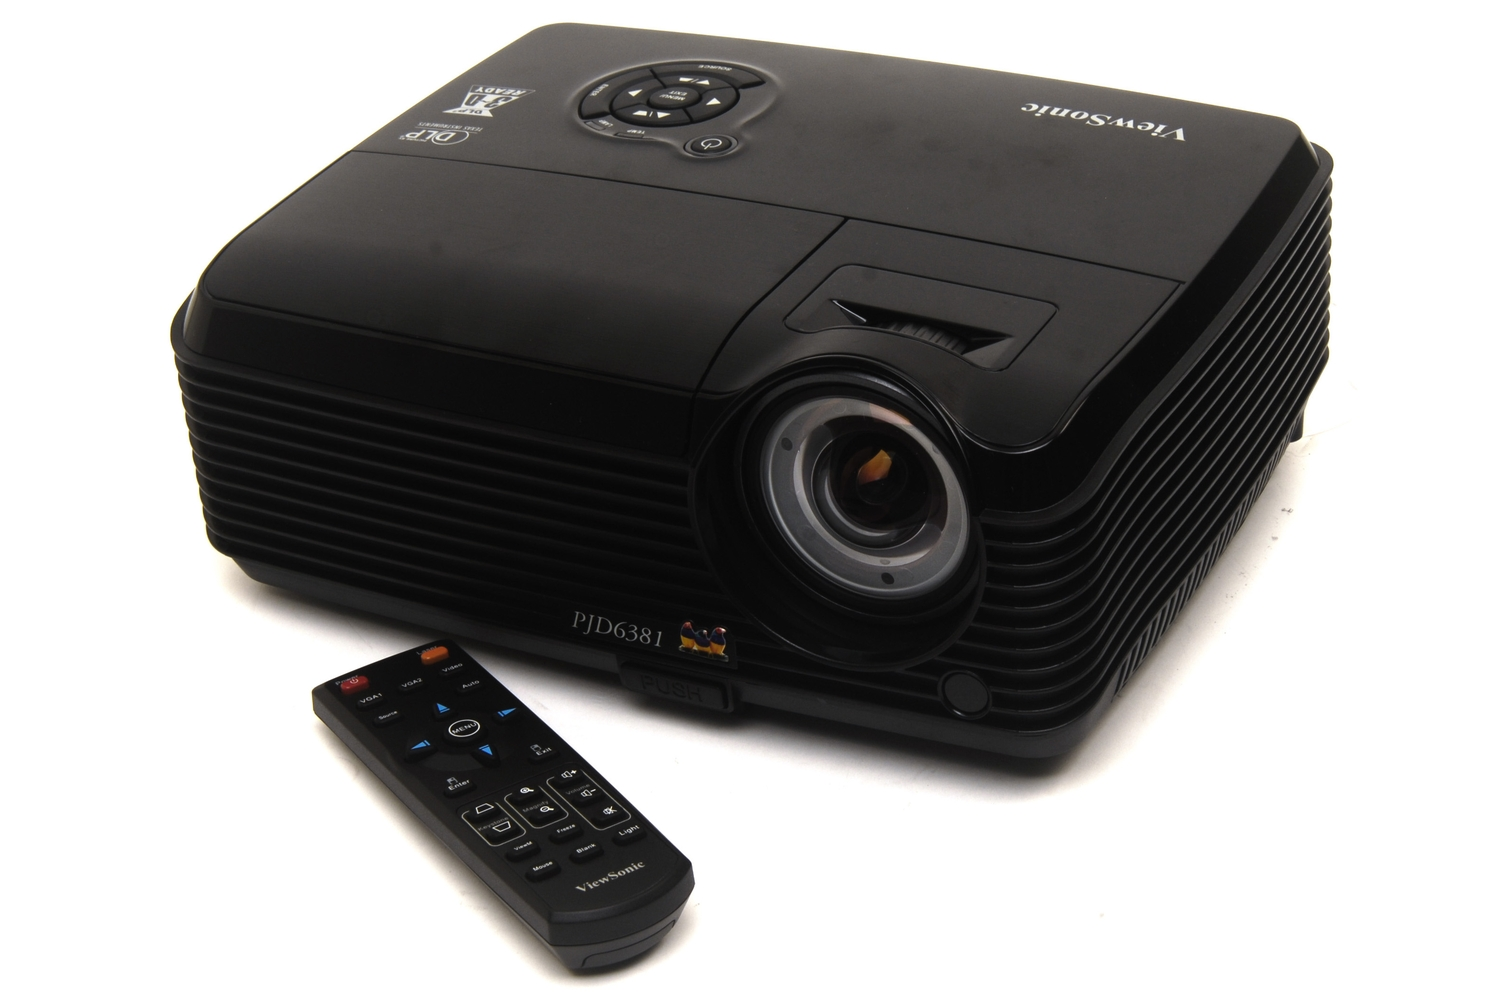 Viewsonic pjd6381 review viewsonic 39 s latest portable for Latest pocket projector